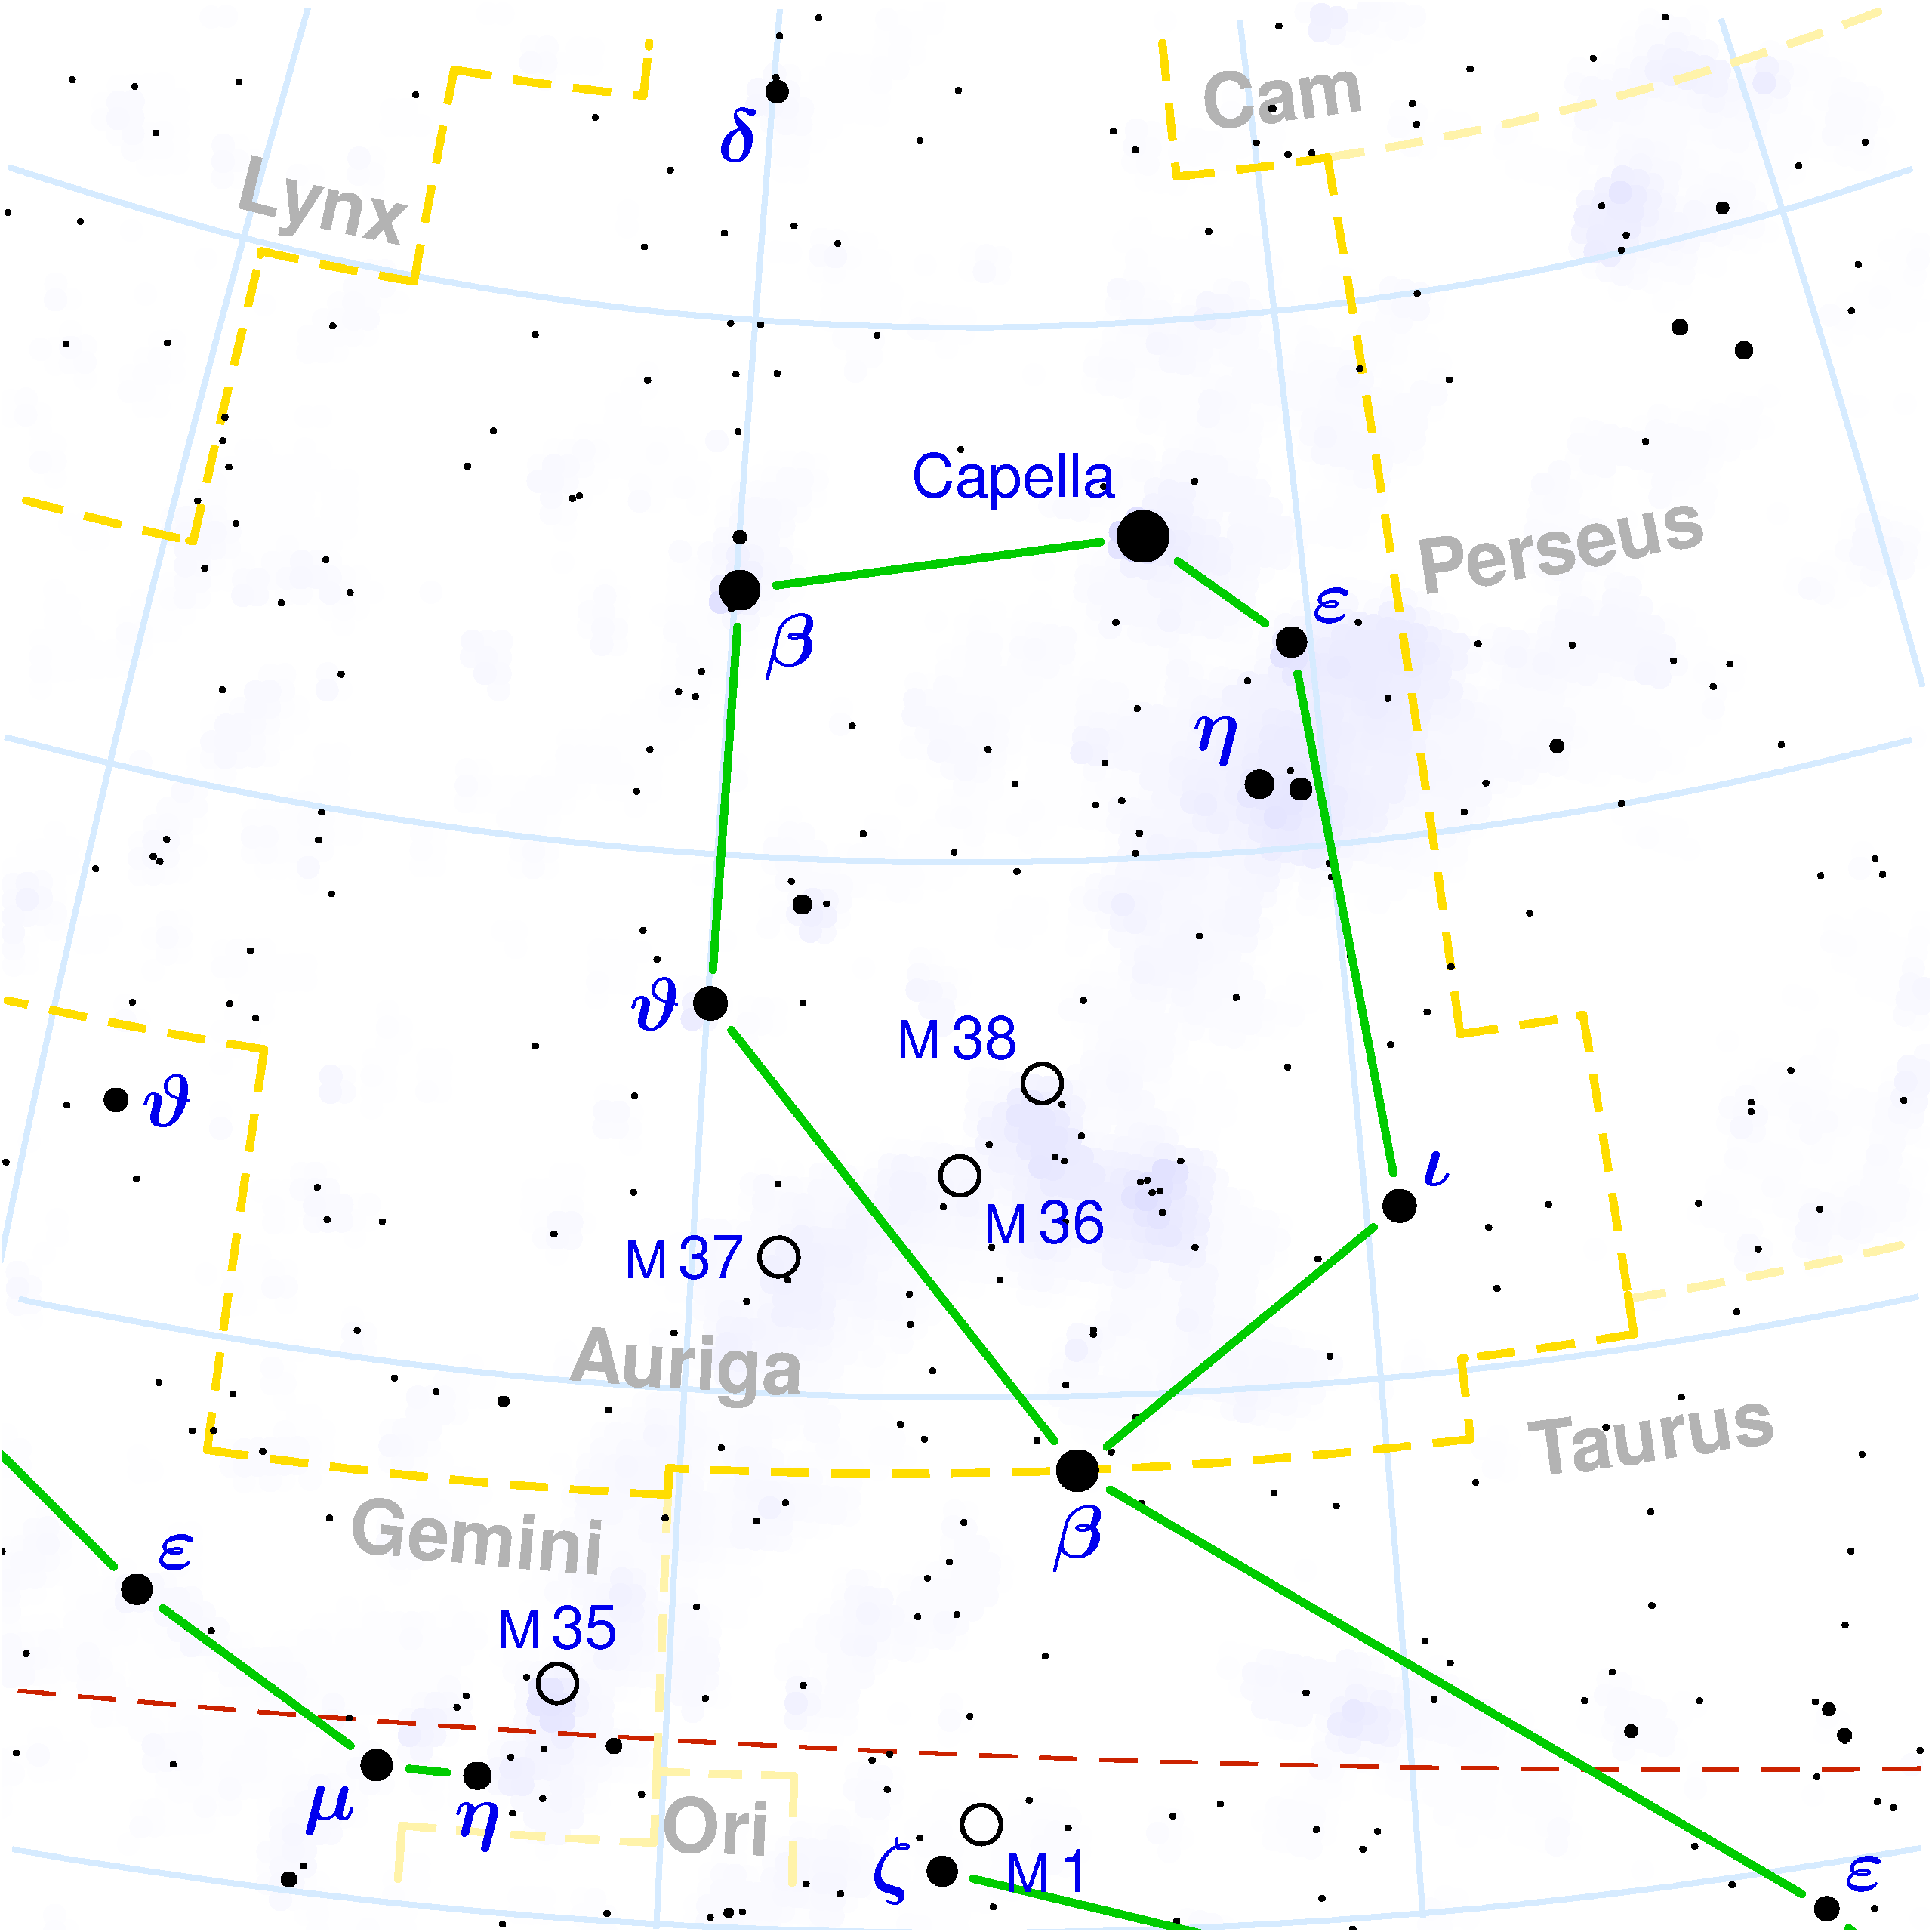 File:Auriga constellation map.png - Wikipedia, the free encyclopedia